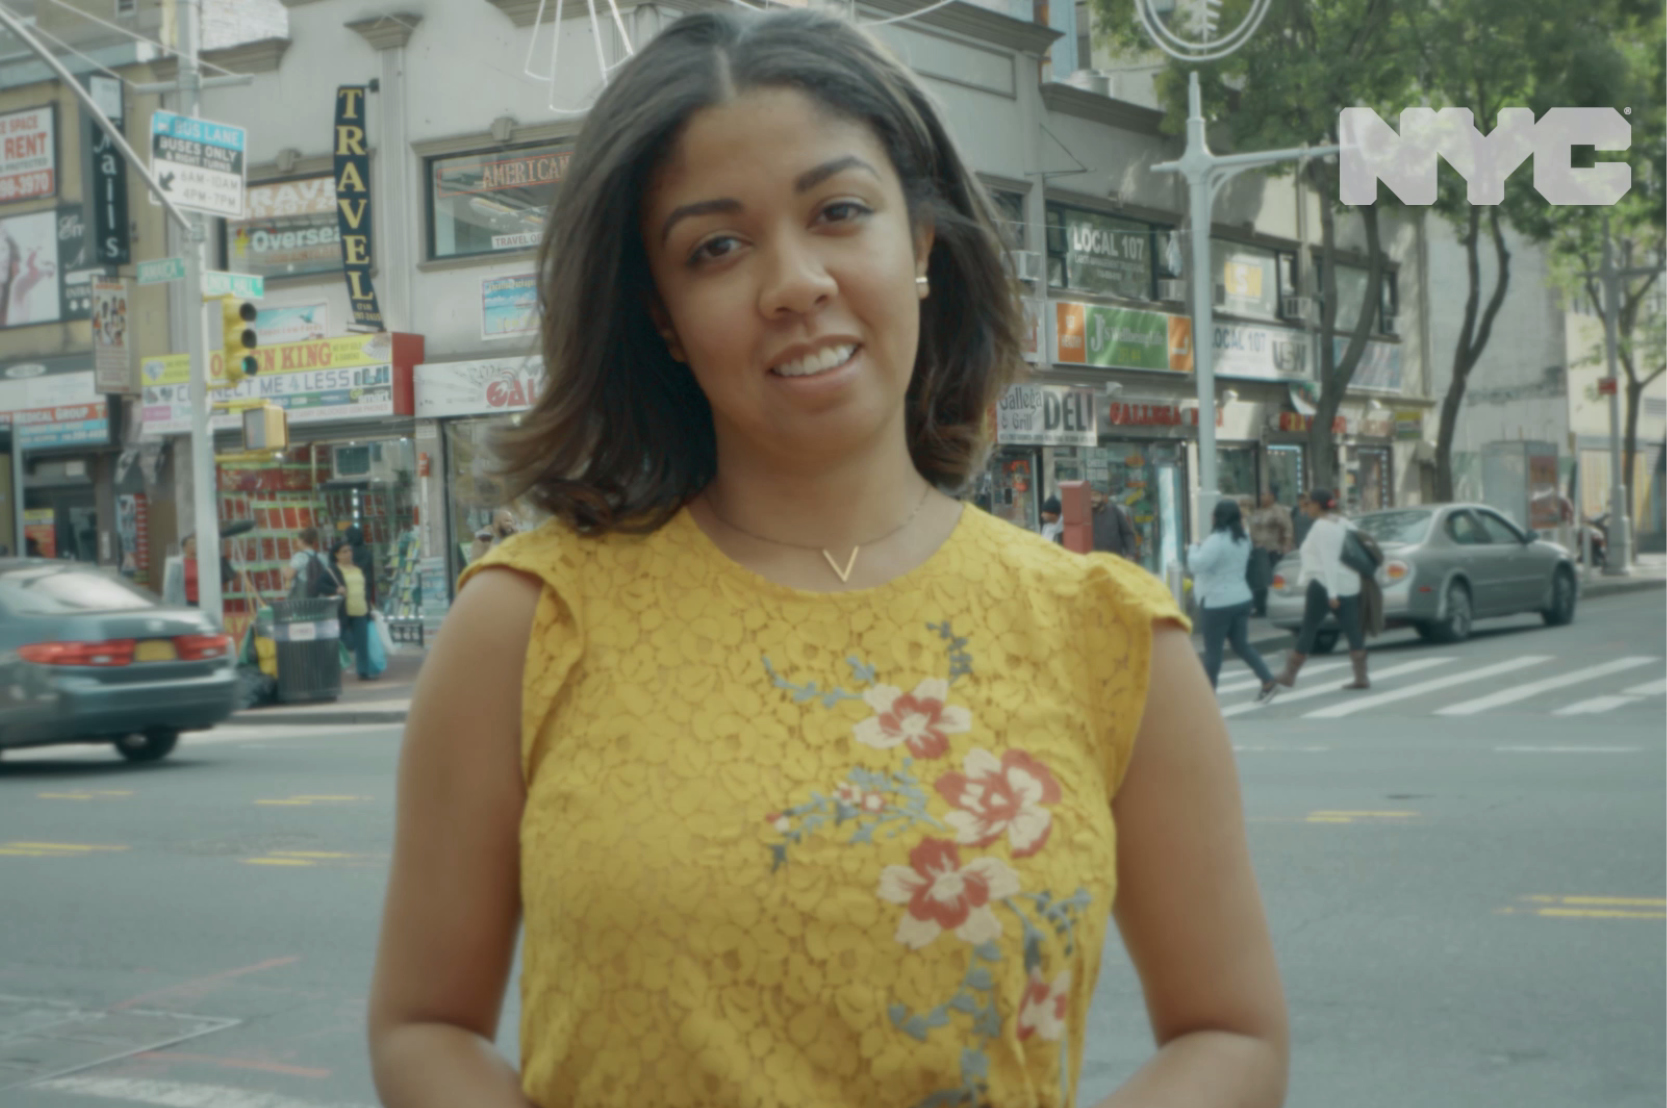 Screenshot from a video of a young woman standing at a NYC intersection.